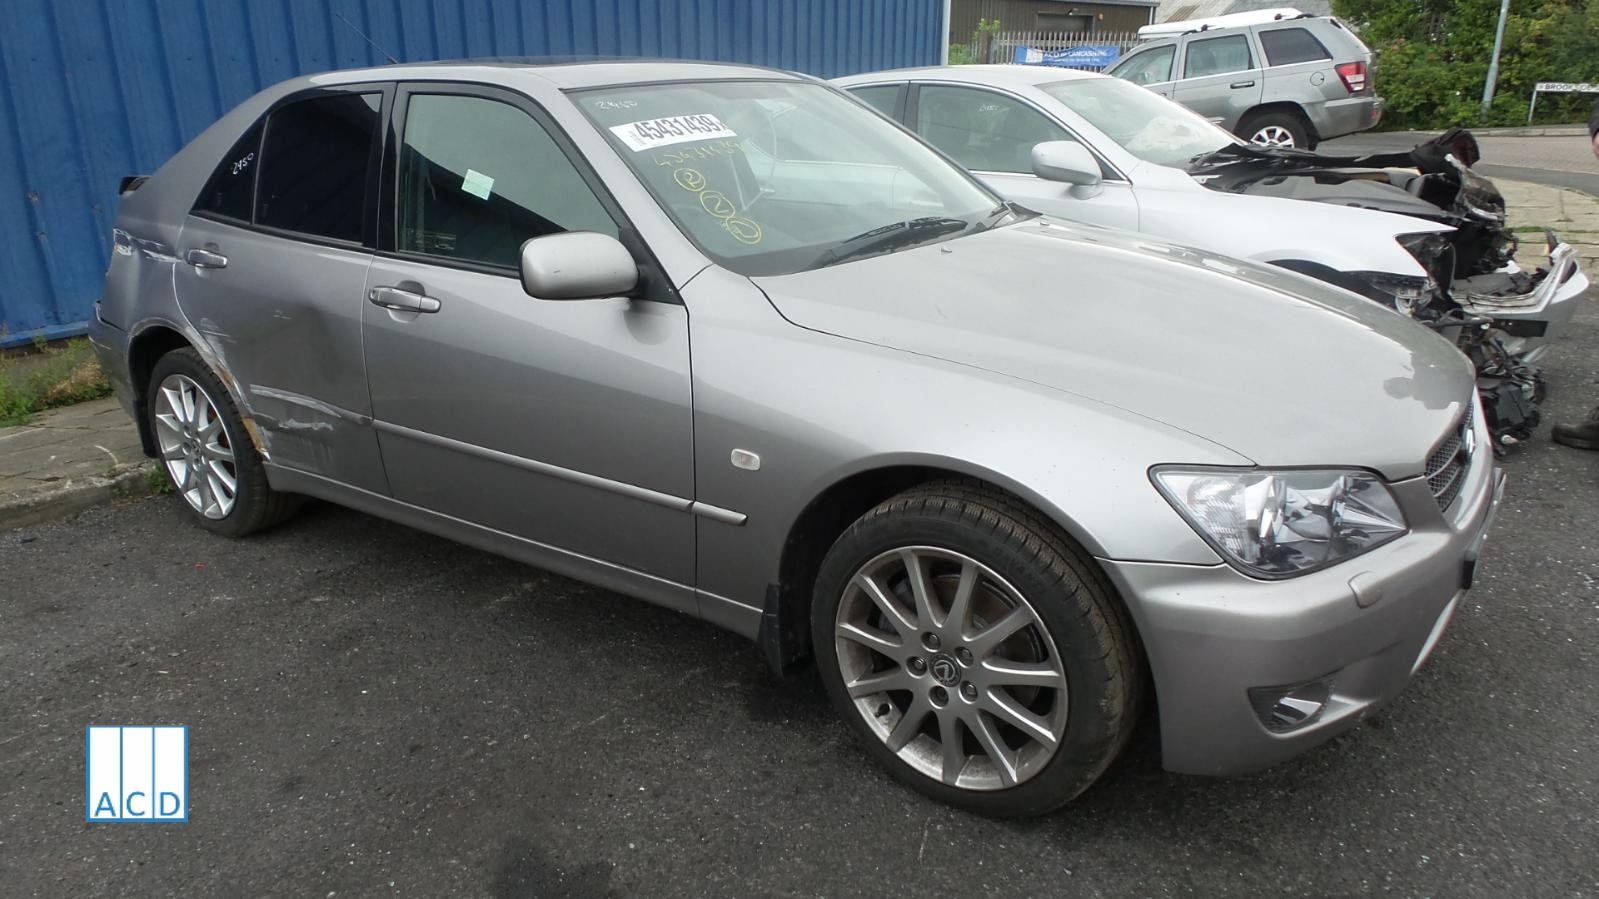 LEXUS IS200 LE used spares